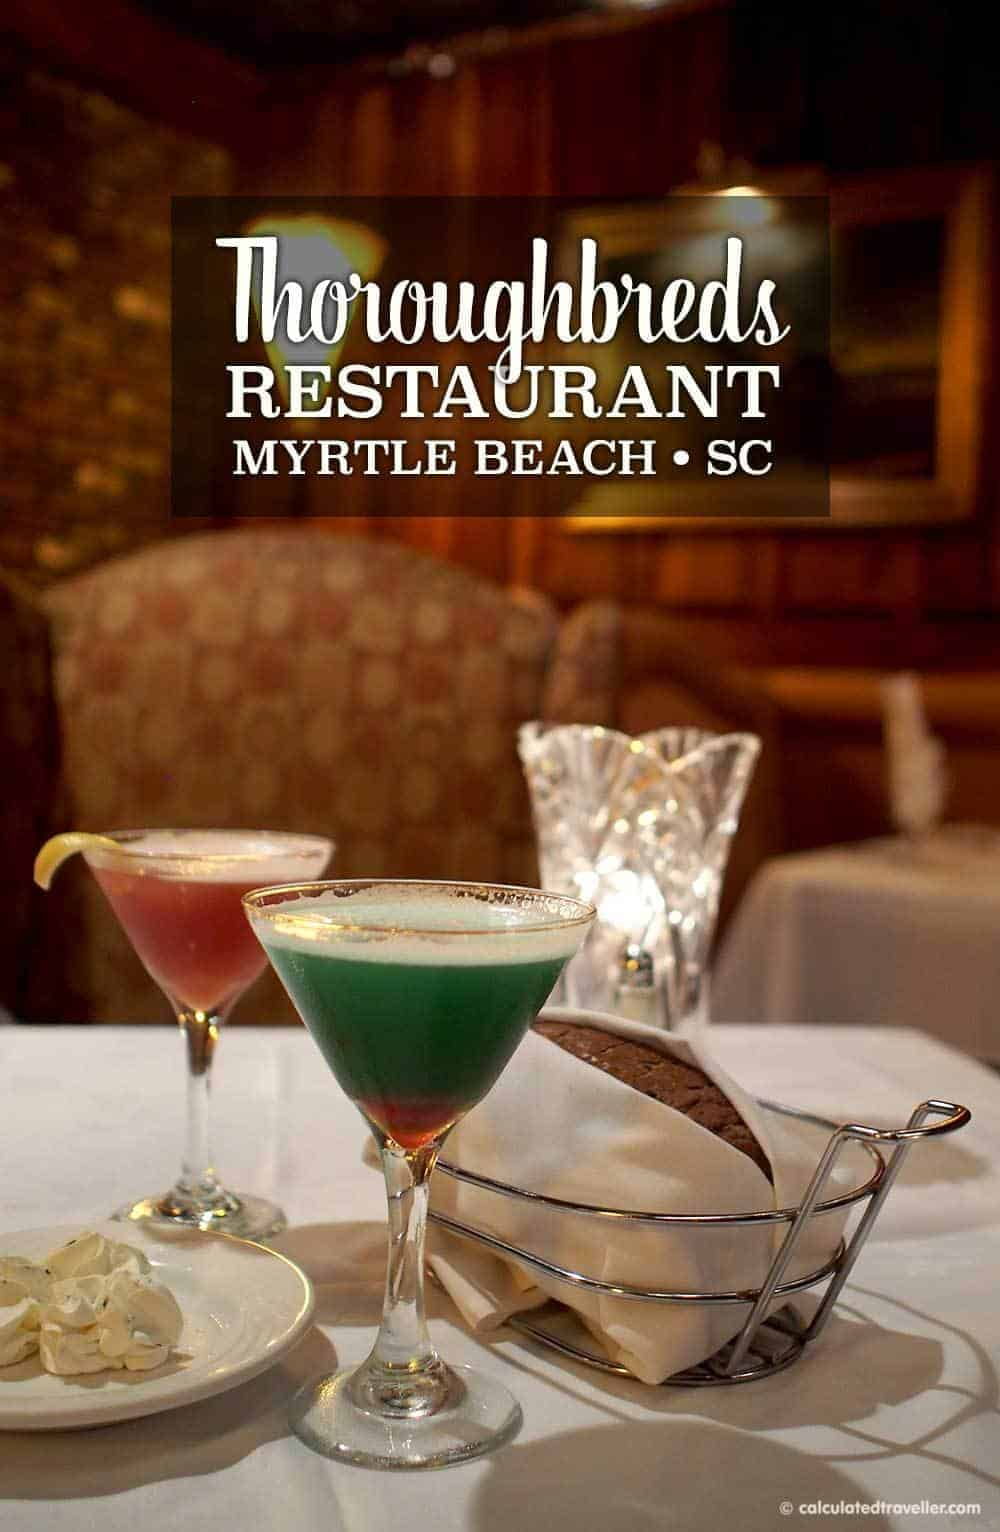 Fine Dining Thoroughbreds Restaurant, Myrtle Beach SC by Calculated Traveller